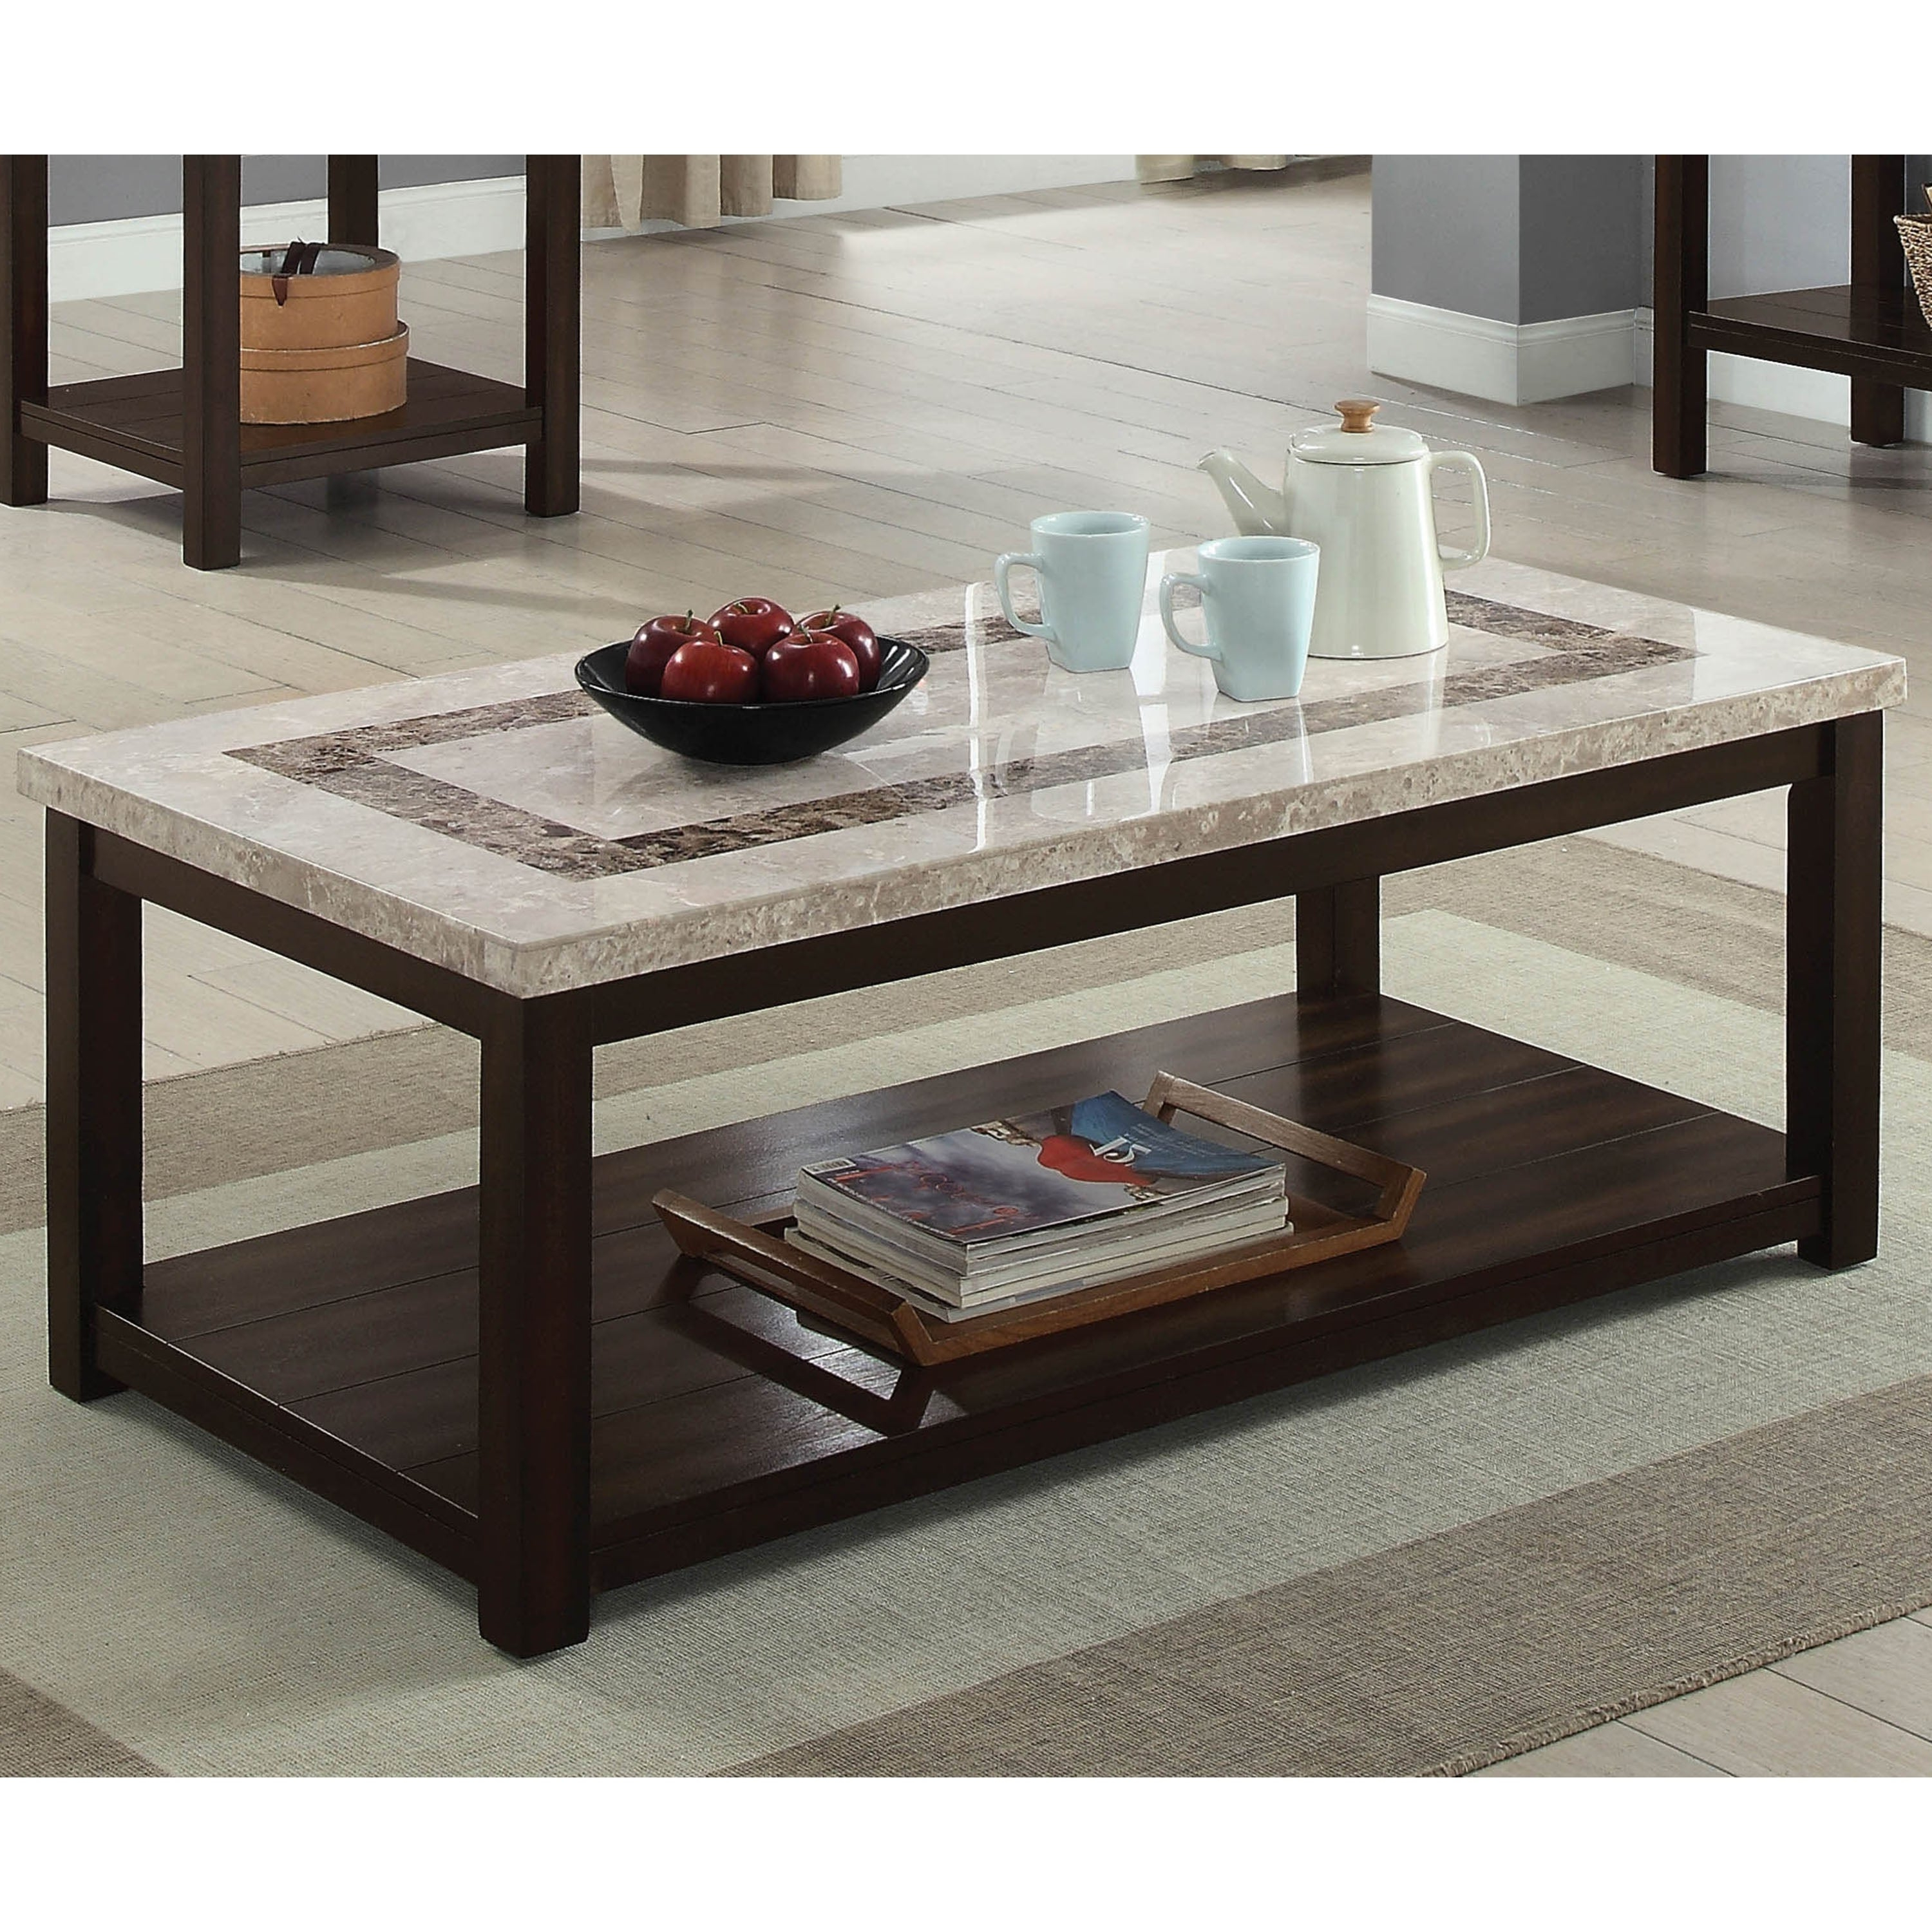 Kinsler 3 Piece Bistro Sets Throughout Widely Used Marble Furniture (View 11 of 25)